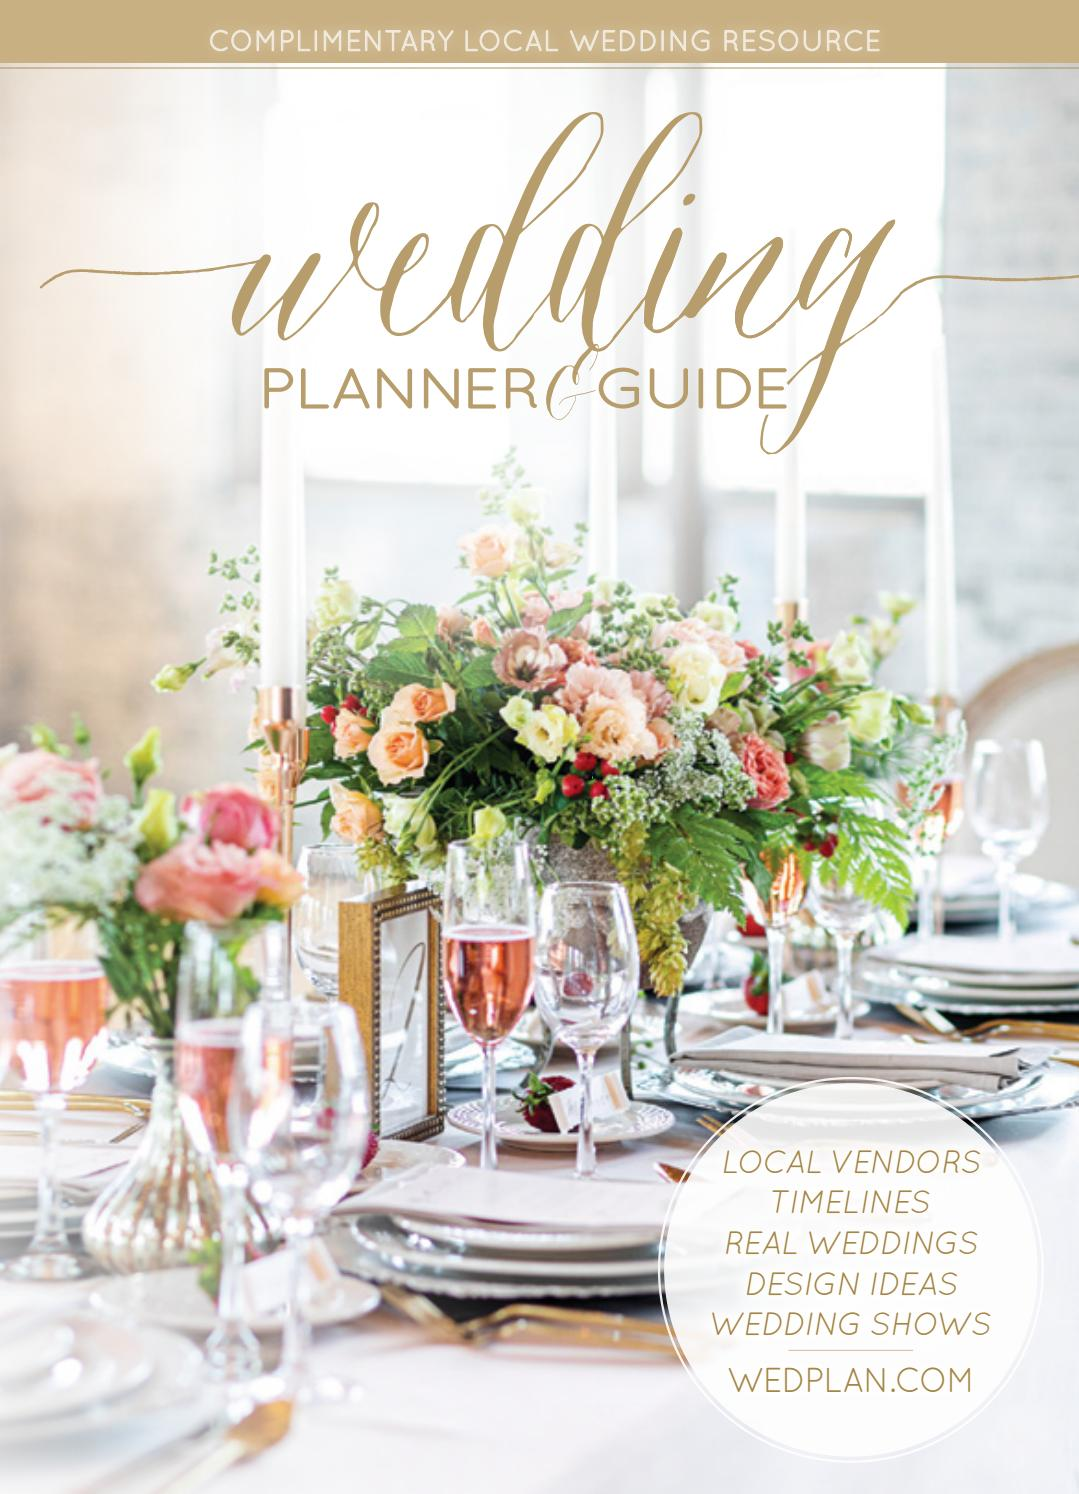 Wedding Planner Guide 2020 Issue By Wedding Planner Guide Issuu